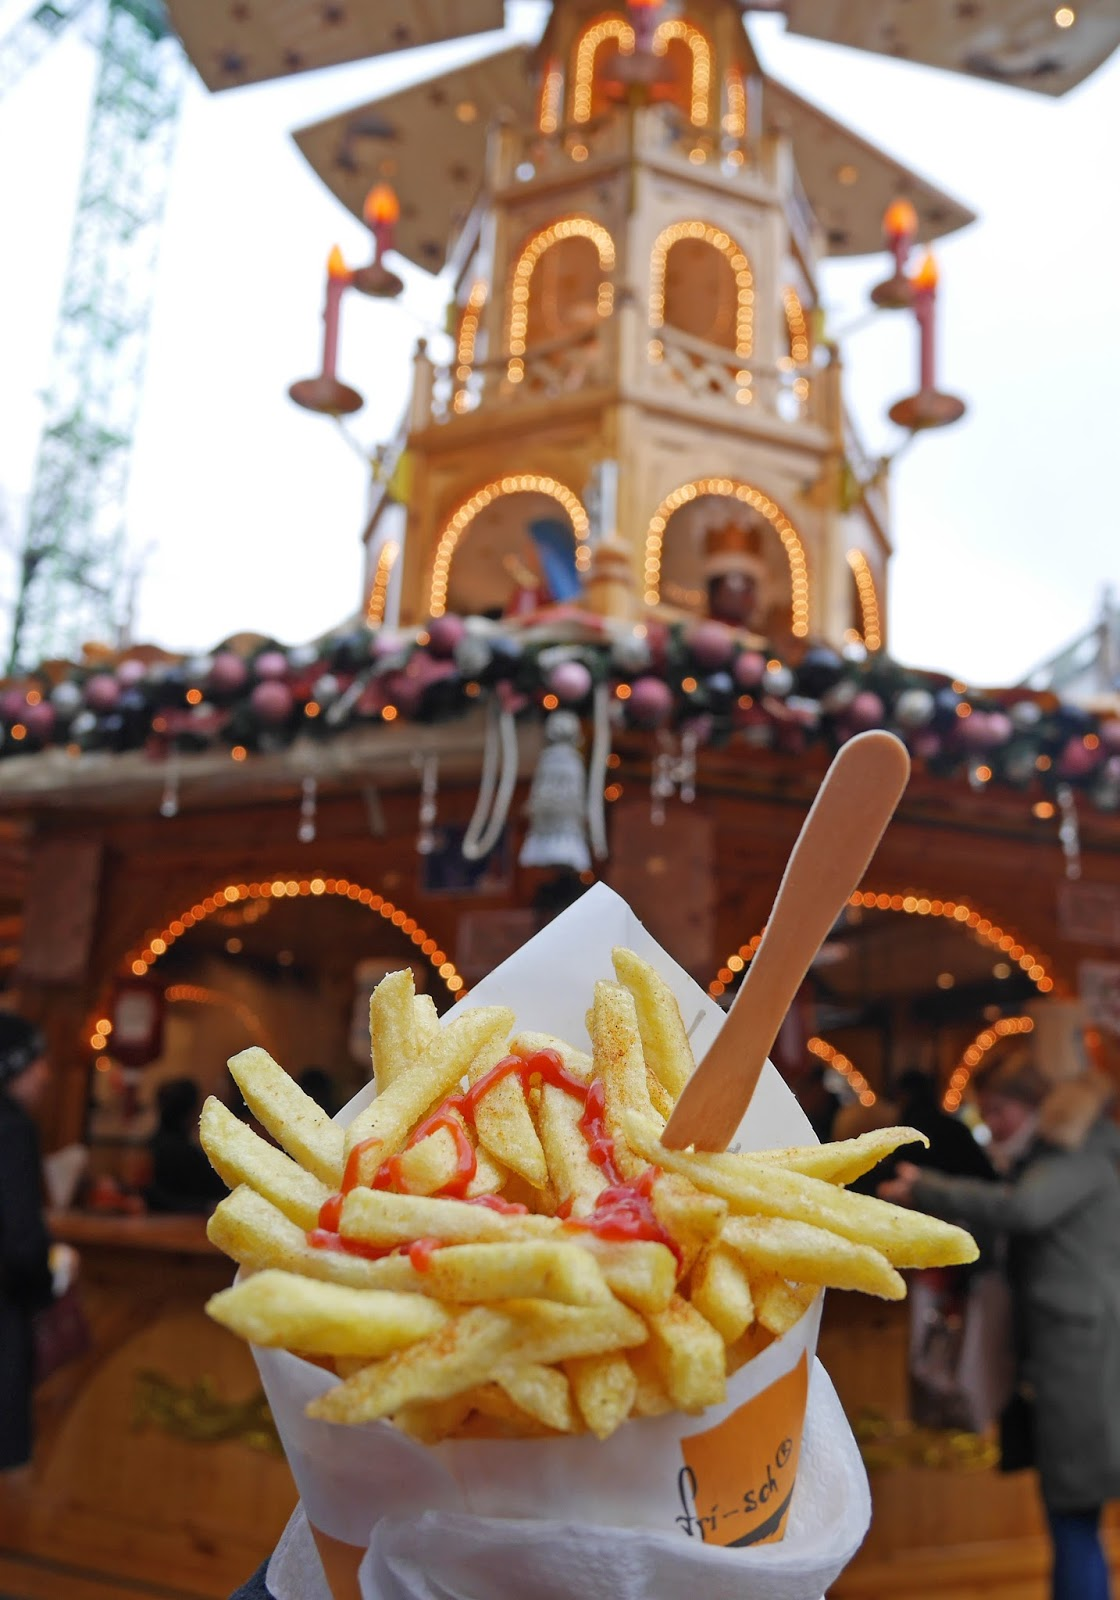 Chips at the Munich Christmas Markets